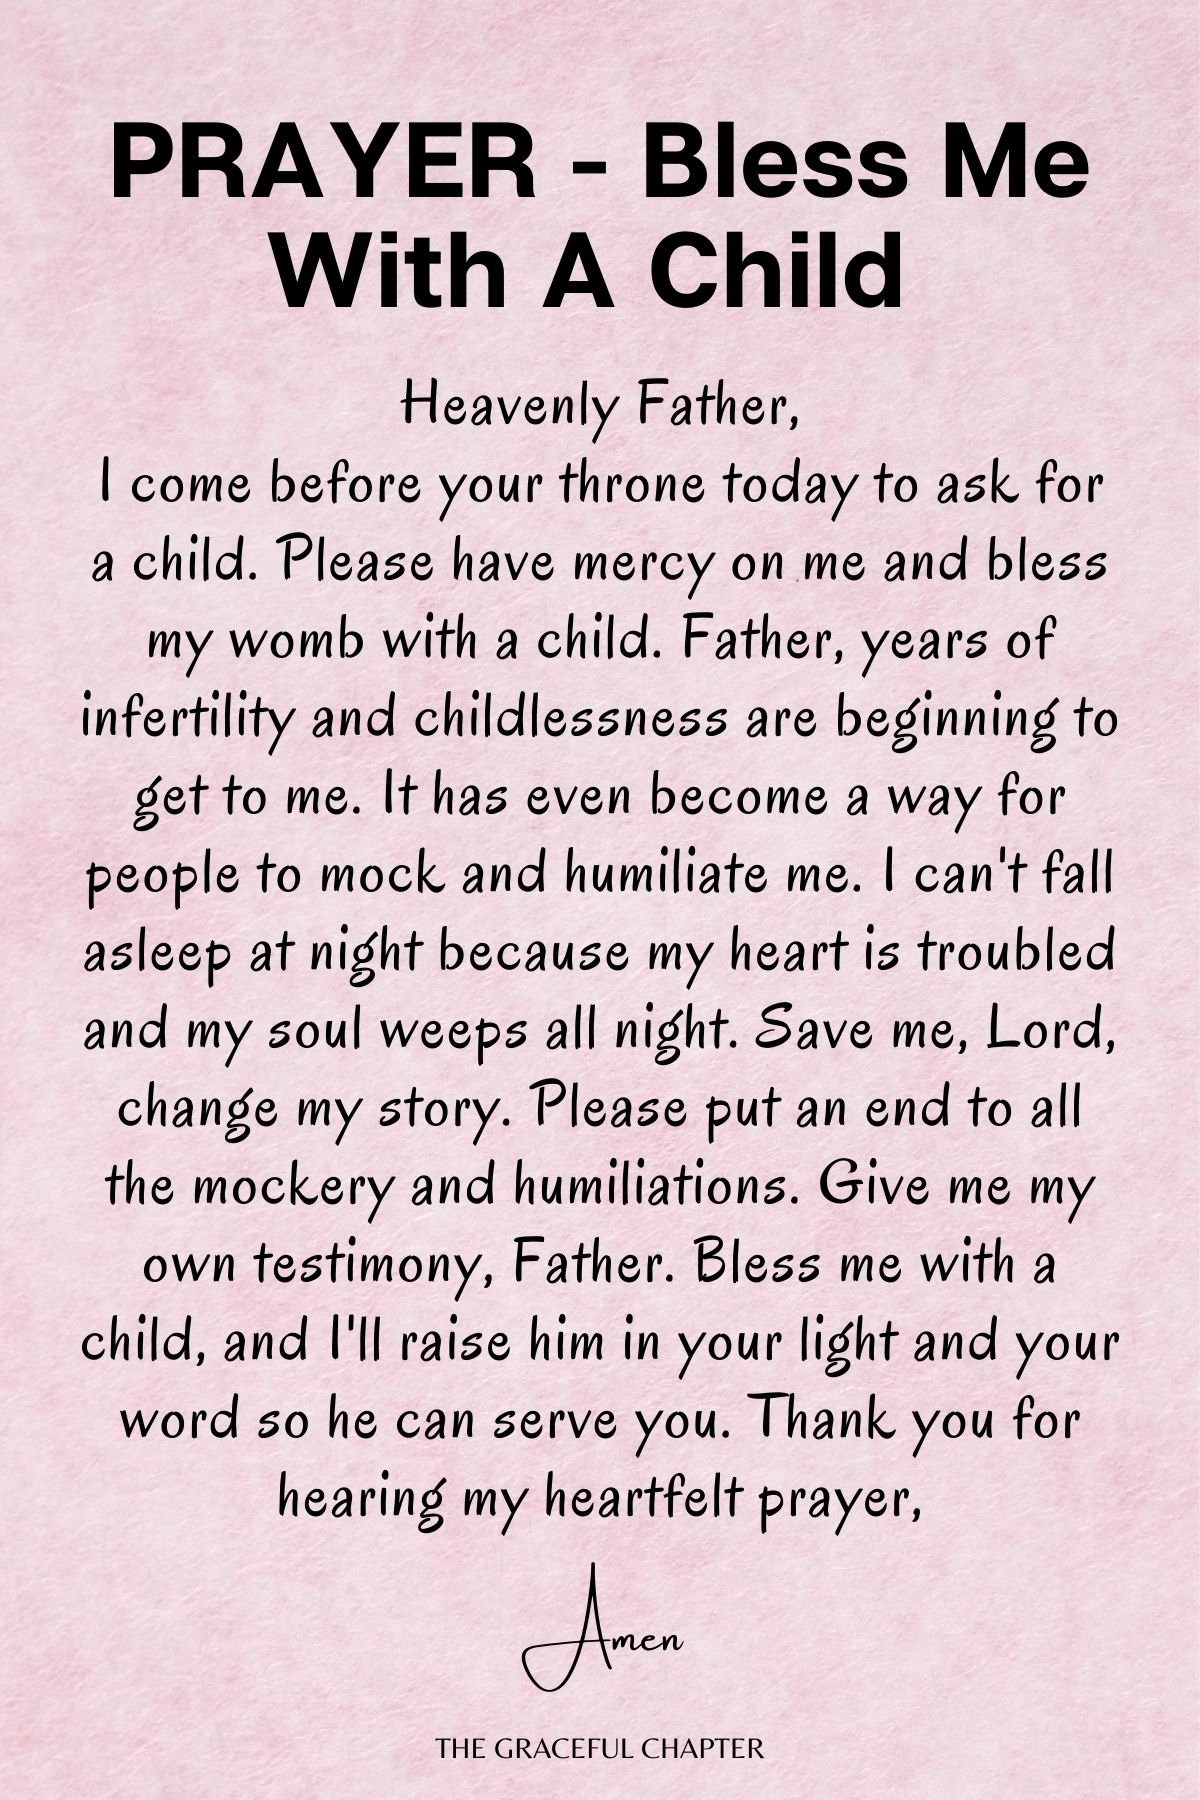 Prayer -  Bless me with a child